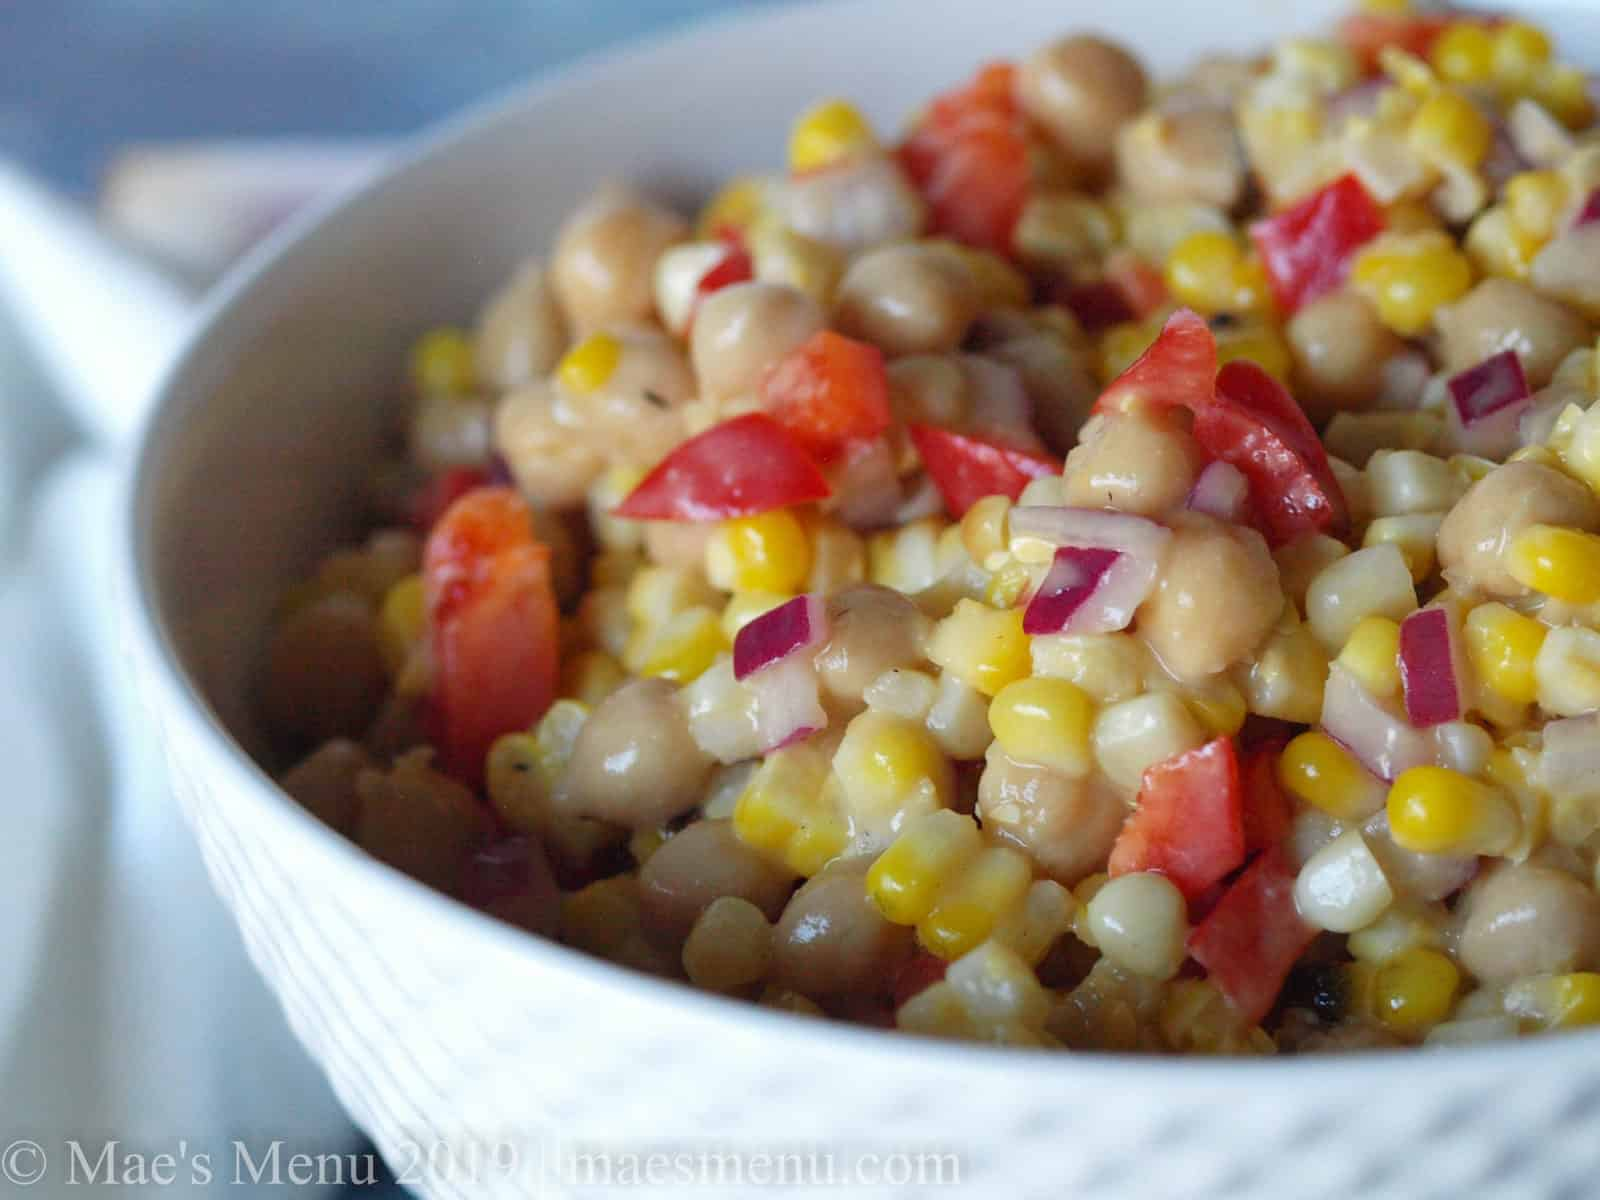 Up-close of chickpea & grilled corn salad with roasted garlic salad dressing.